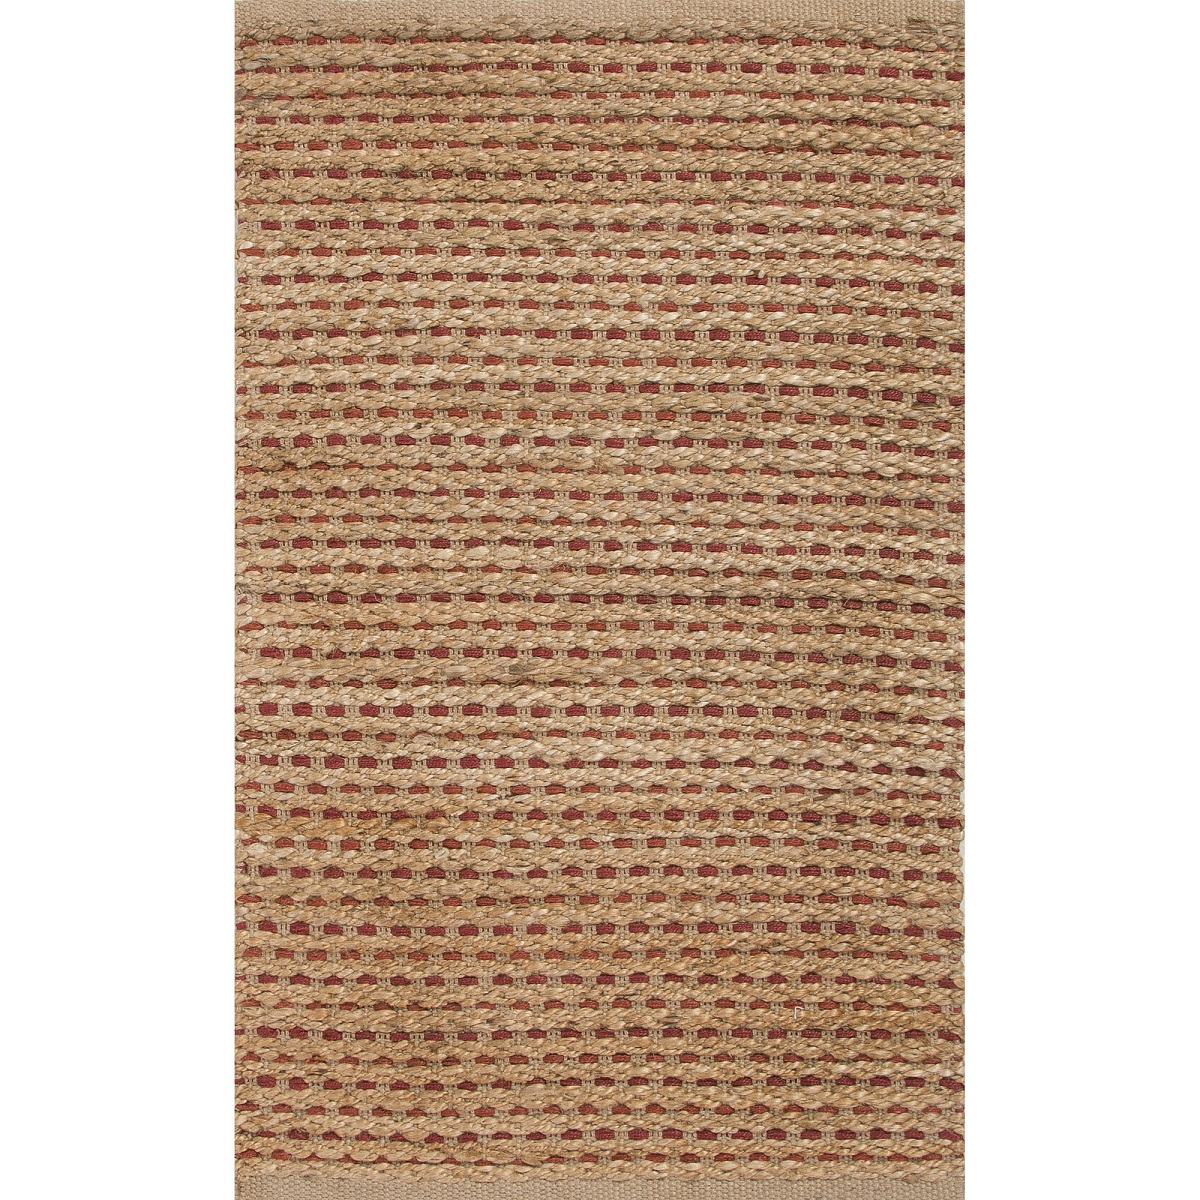 2' x 3.33' Wheat Tan and Red Yarm Jute Accent Throw Rug